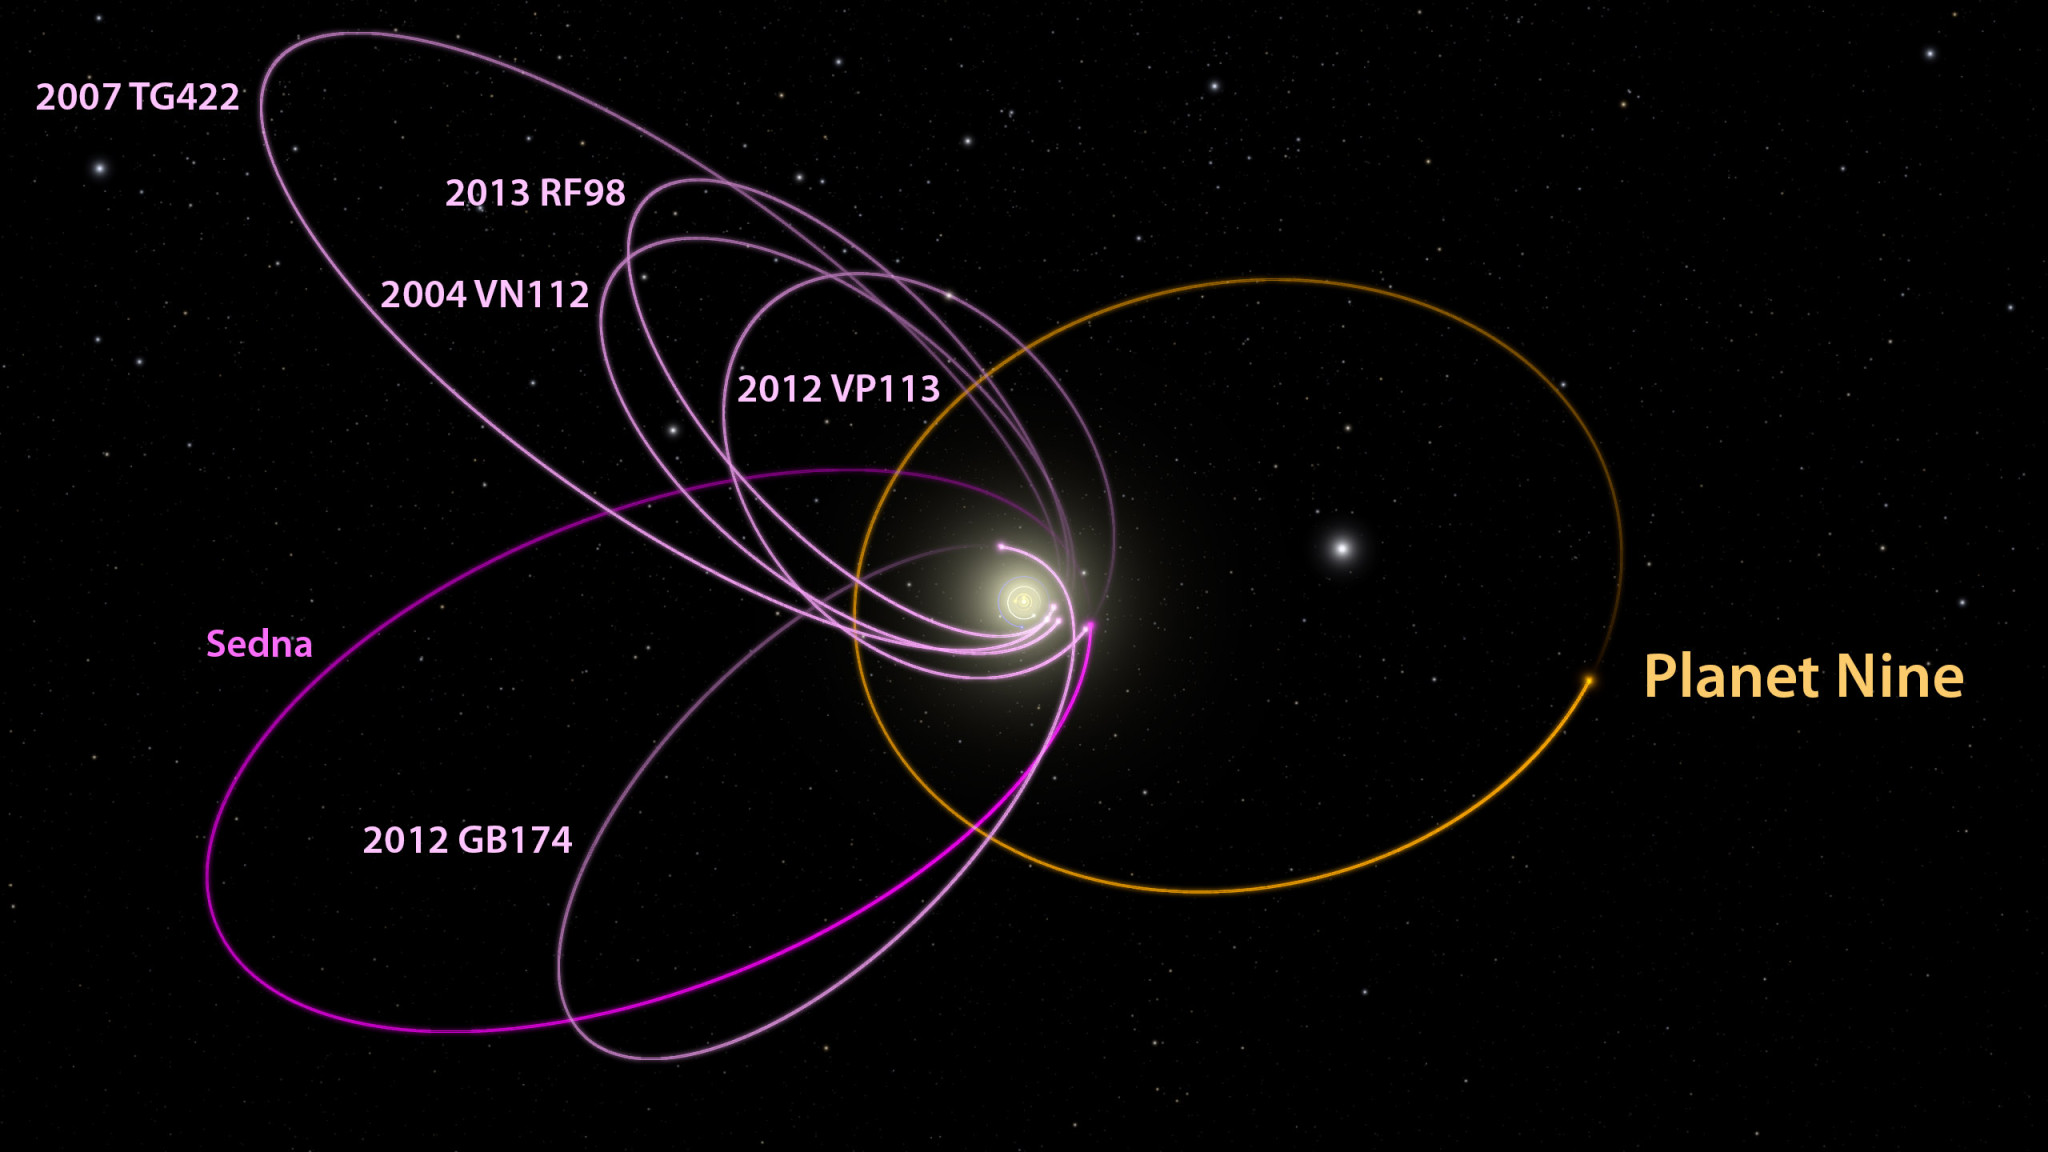 p9_kbo_orbits_labeled_1_